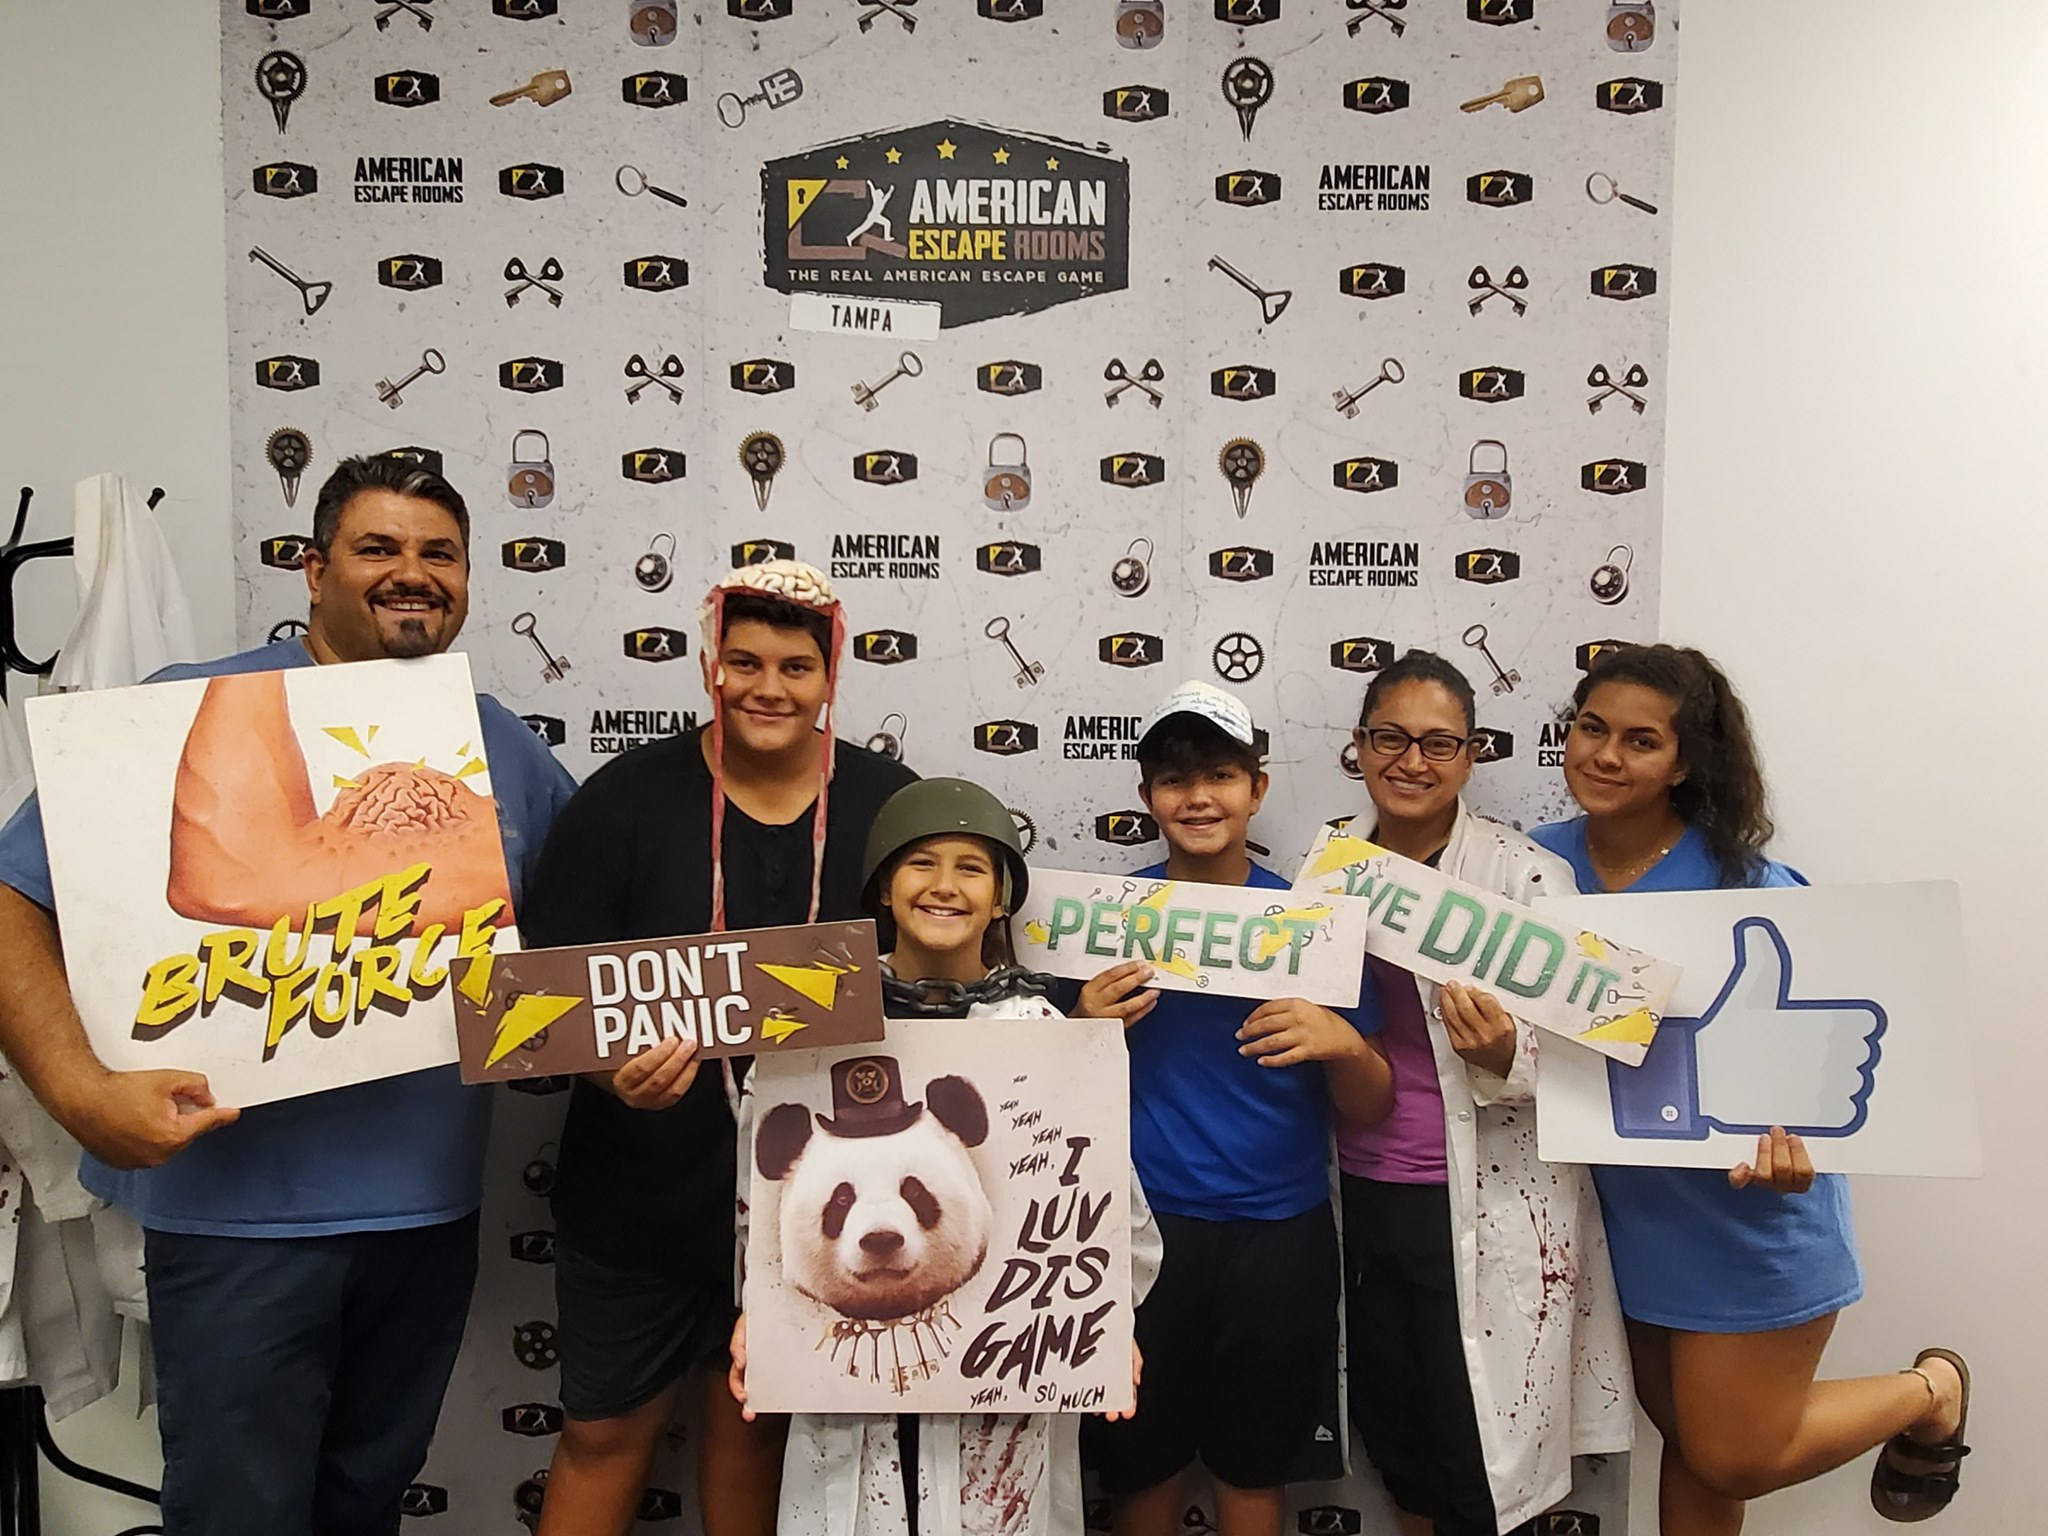 Awesome Abbouds played the Mad Professor's Asylum - Tampa and finished the game with 11 minutes 8 seconds left. Congratulations! Well done!